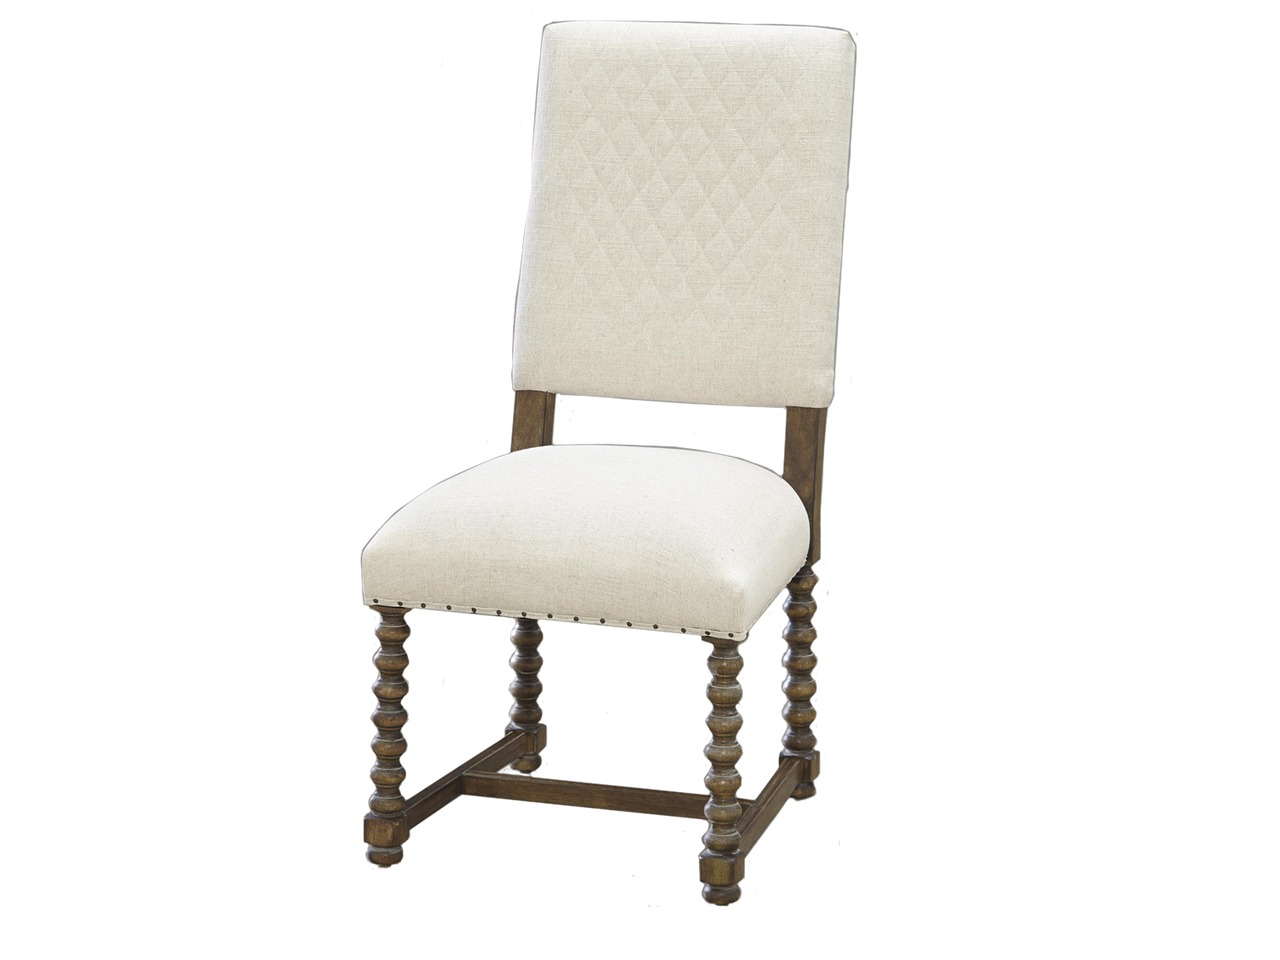 Dining Chair Seat Height 20 Inches Home Design